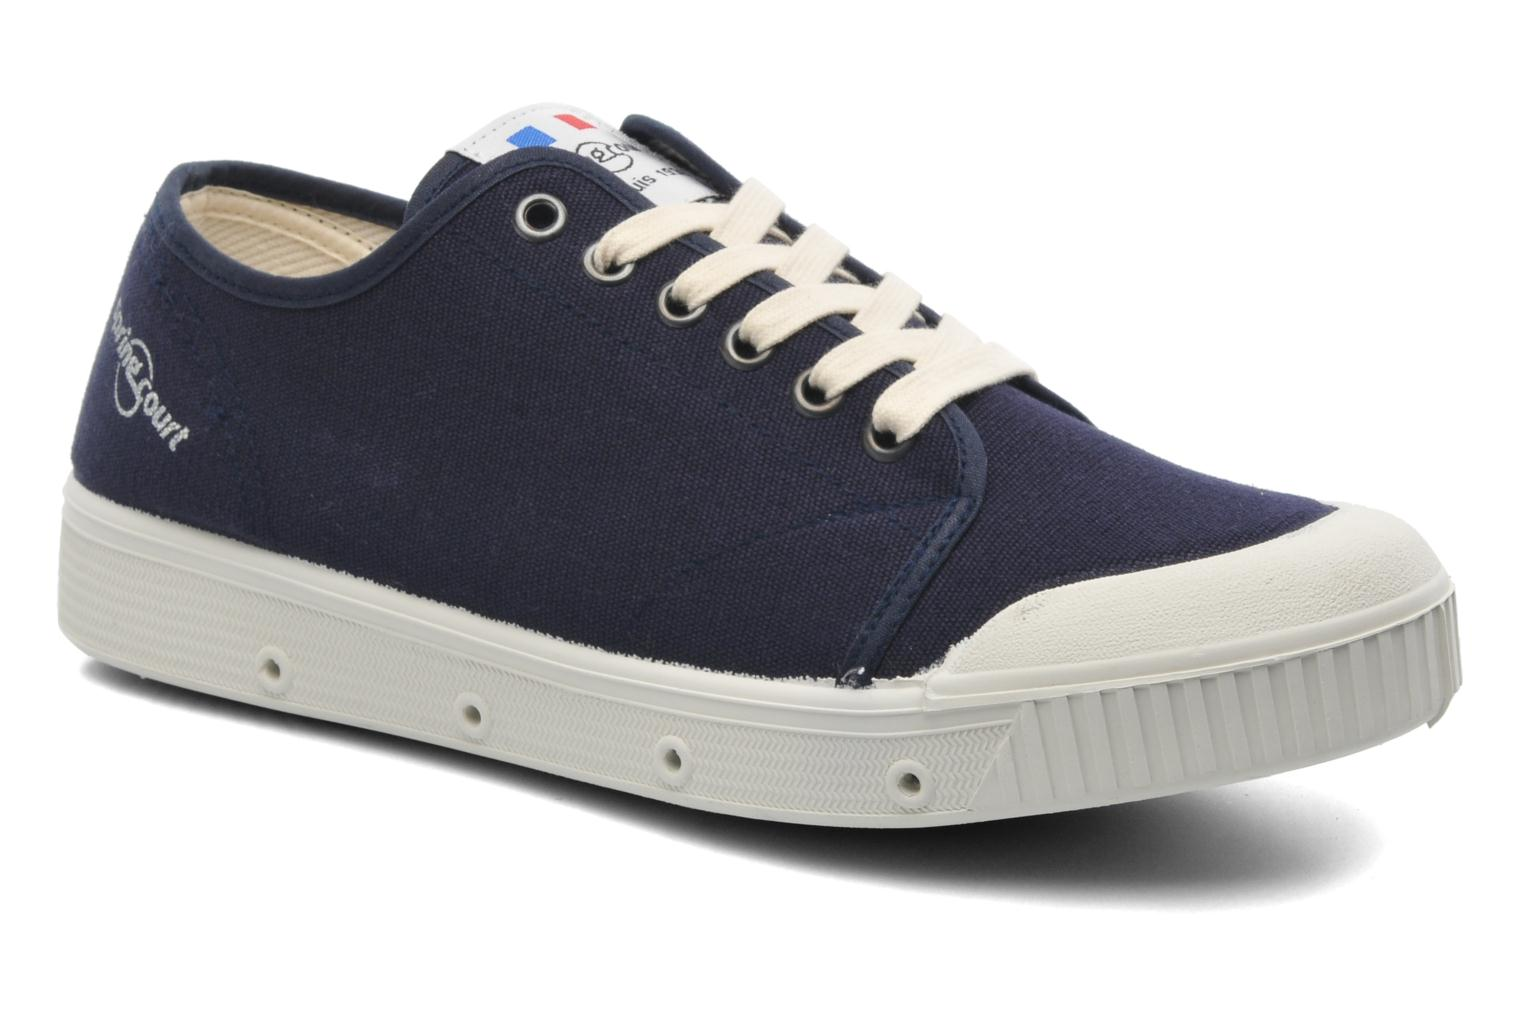 Sneakers G2 lo Cut M II by Spring Court